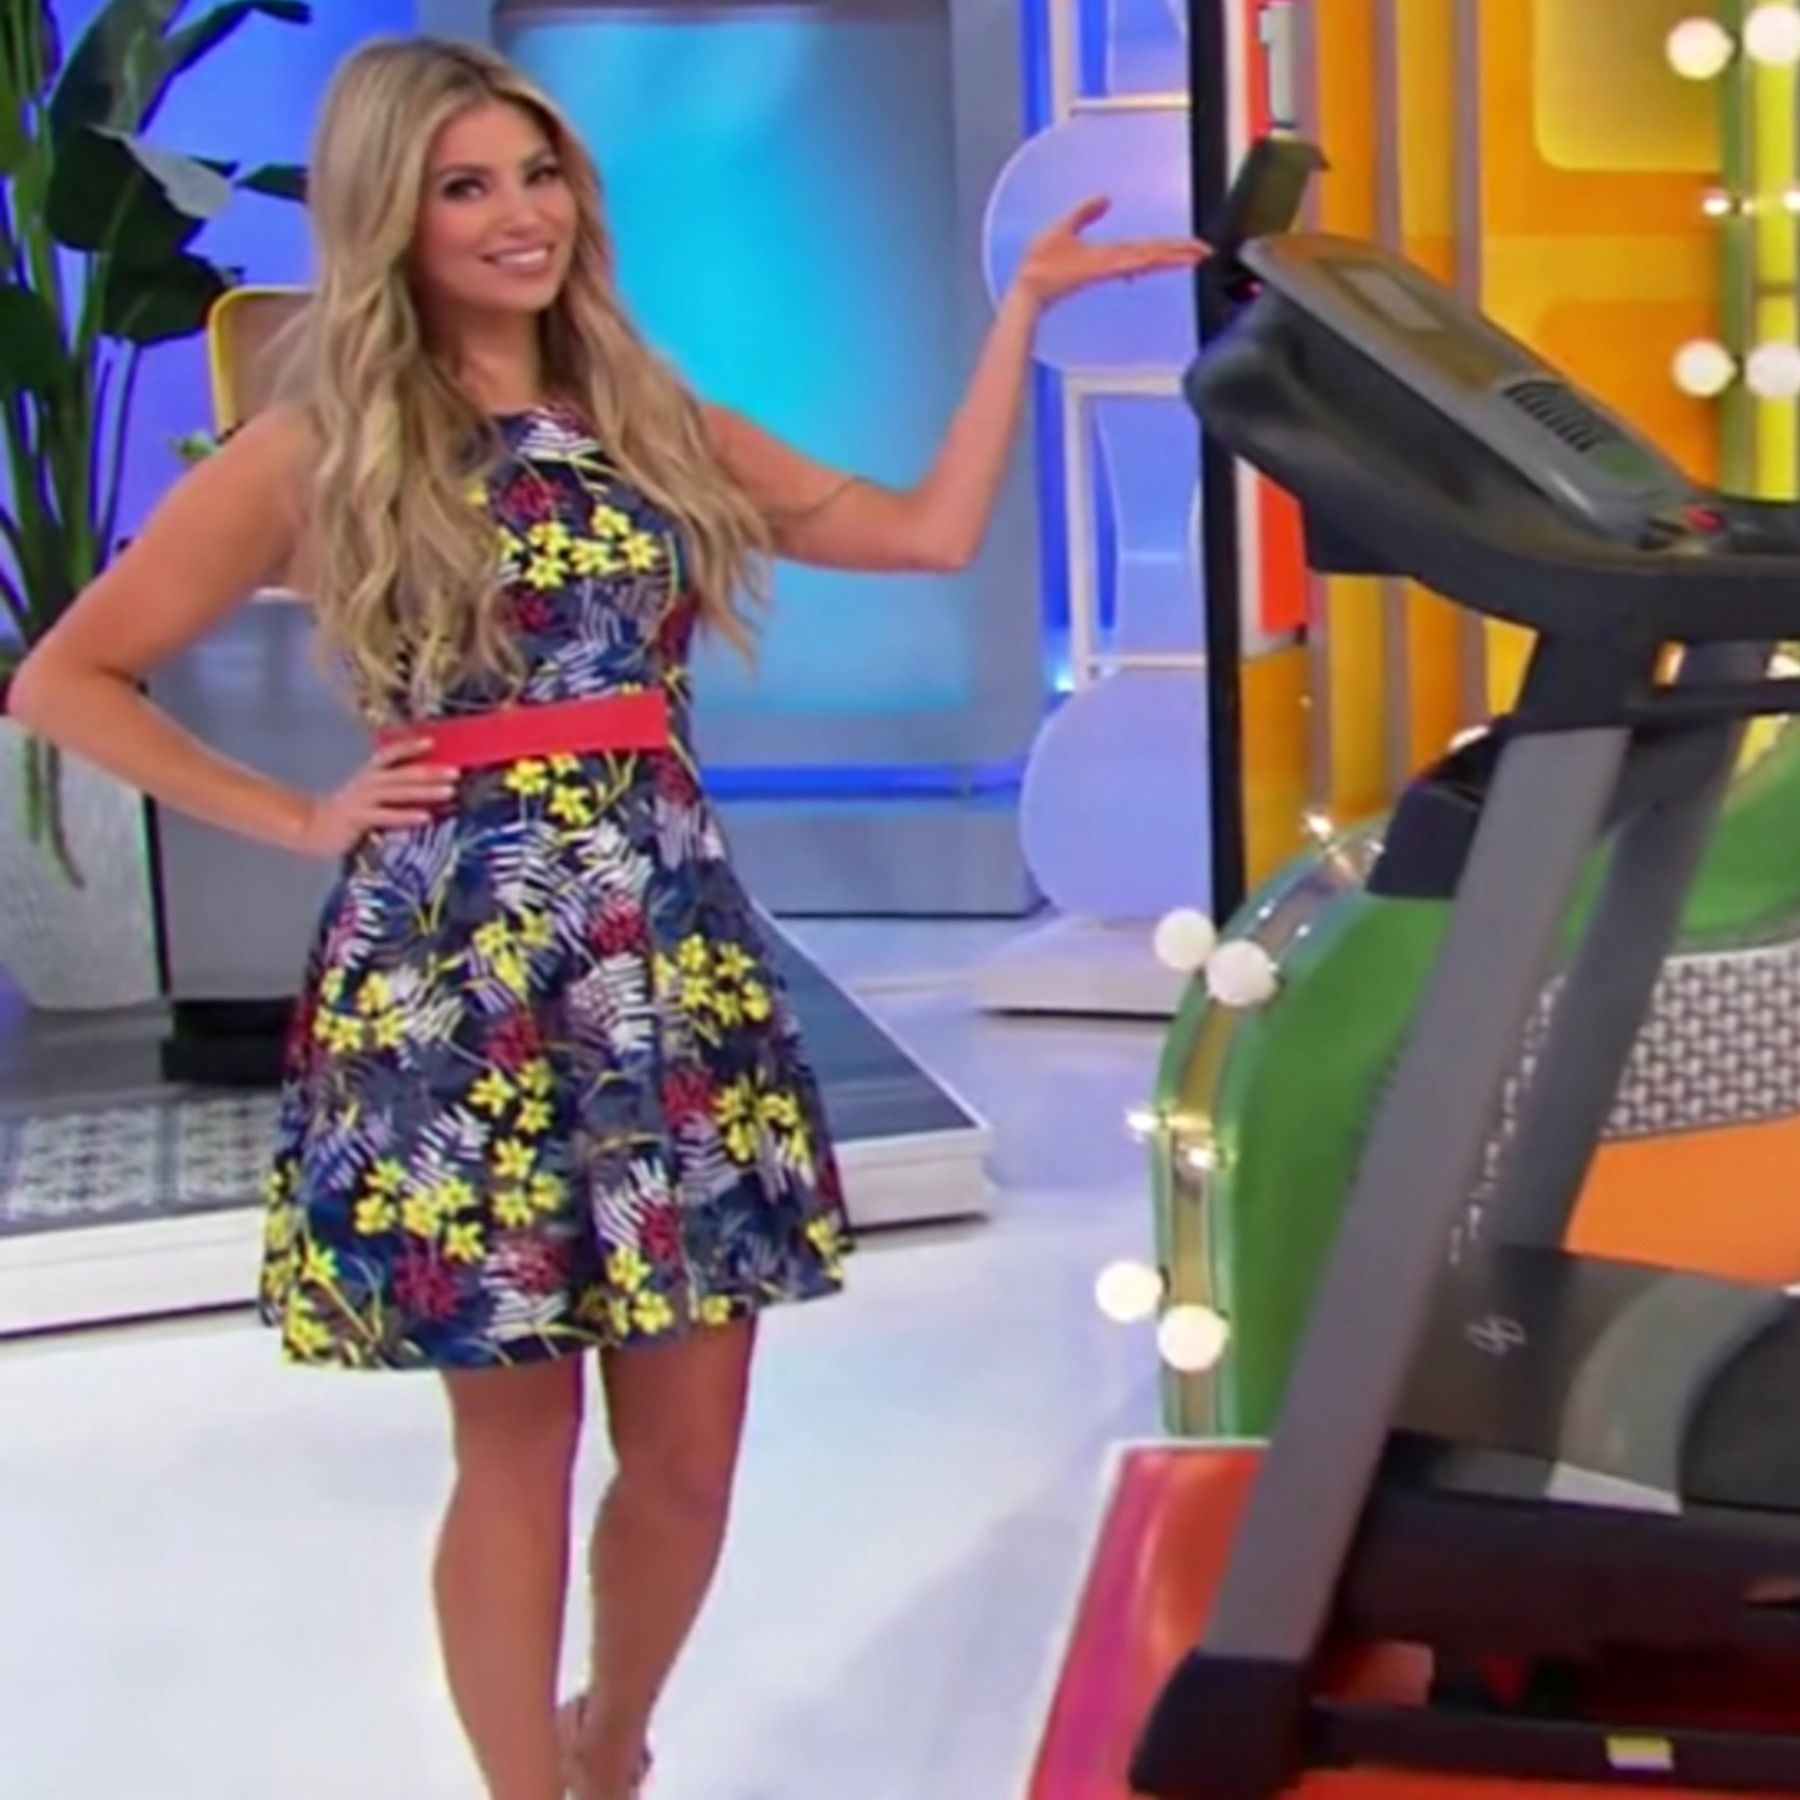 Amber Lancaster From The Price Is Right amber lancaster - the price is right (2/6/2019) ♥️ | amber